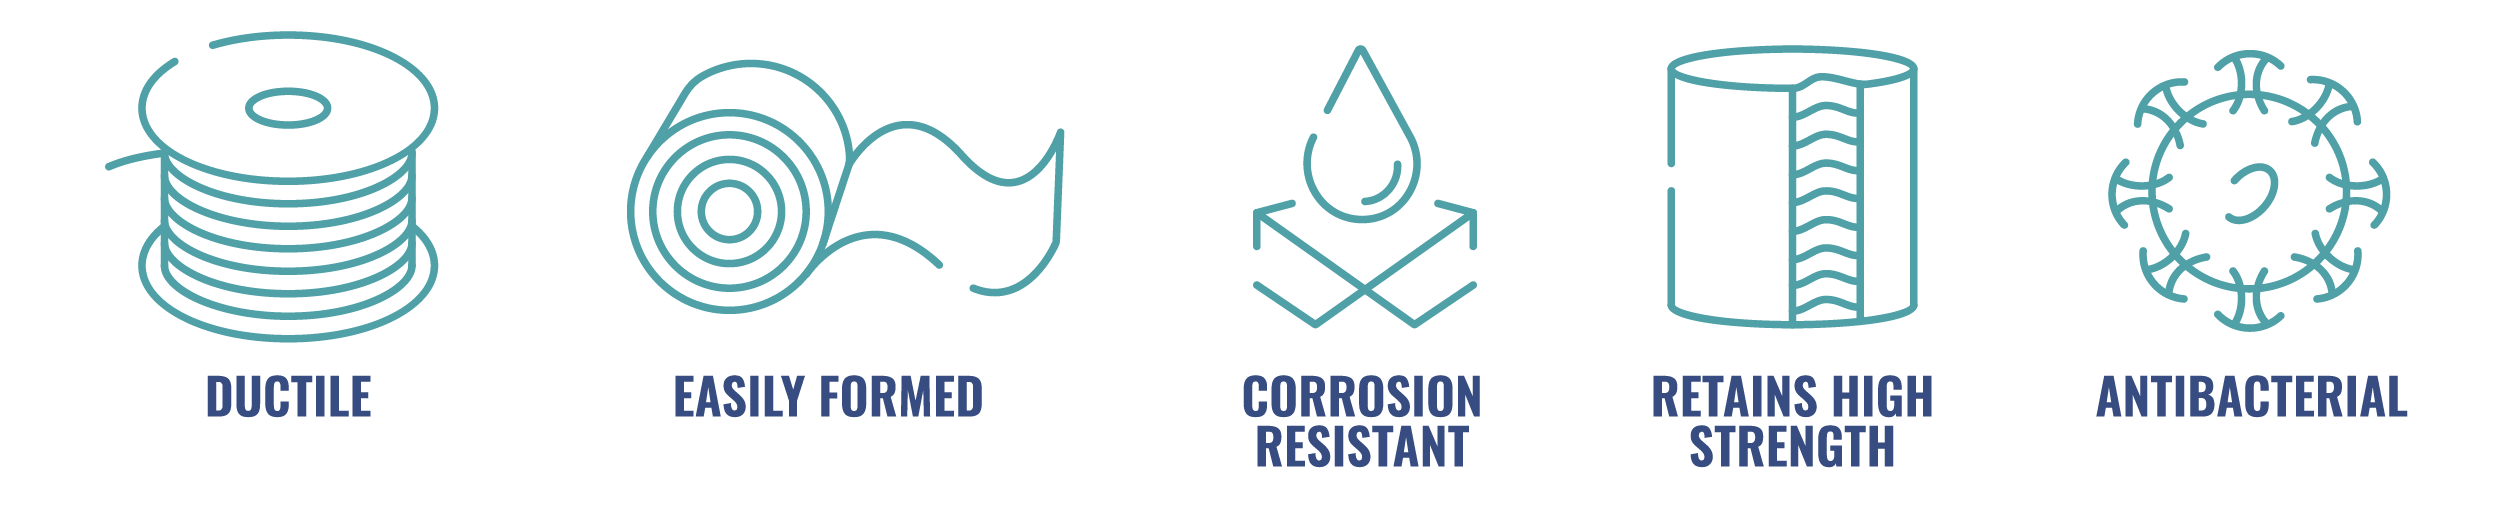 Ductile, Easily Formed, Corrosion Resistant, Retains High Strength, Antibacterial icons